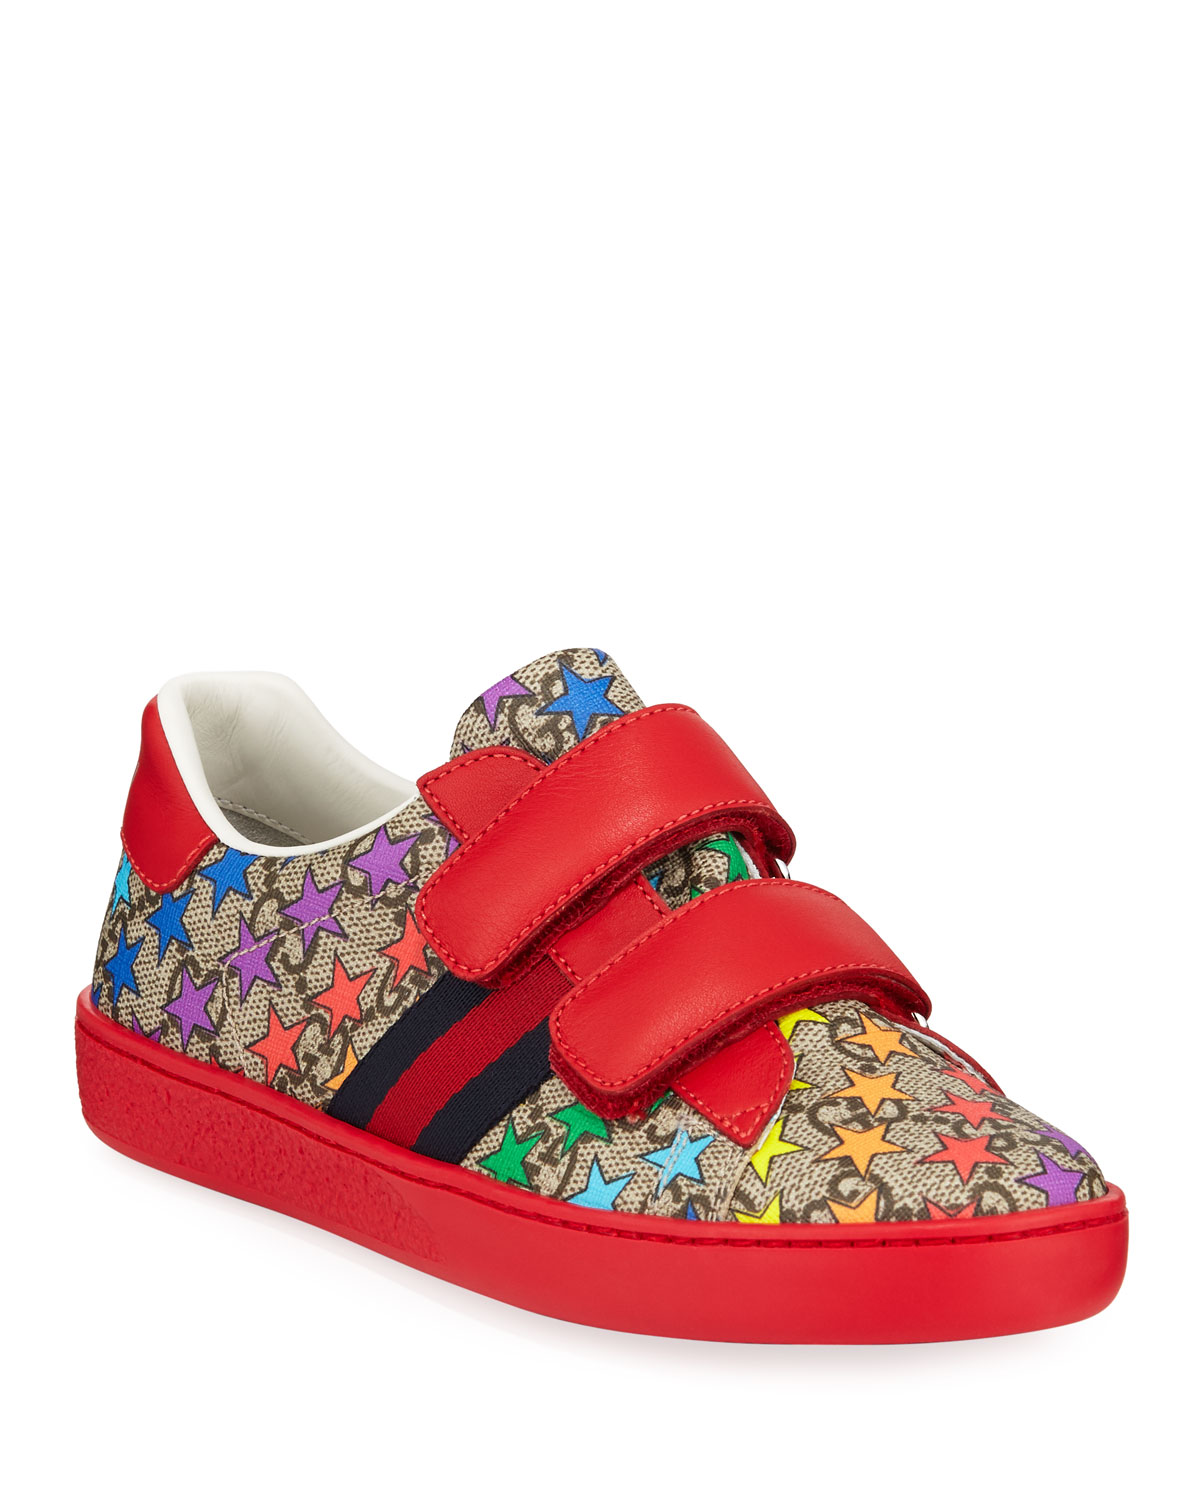 285779de4 Gucci New Ace GG Supreme Rainbow Star-Print Sneakers, Toddler/Kids ...